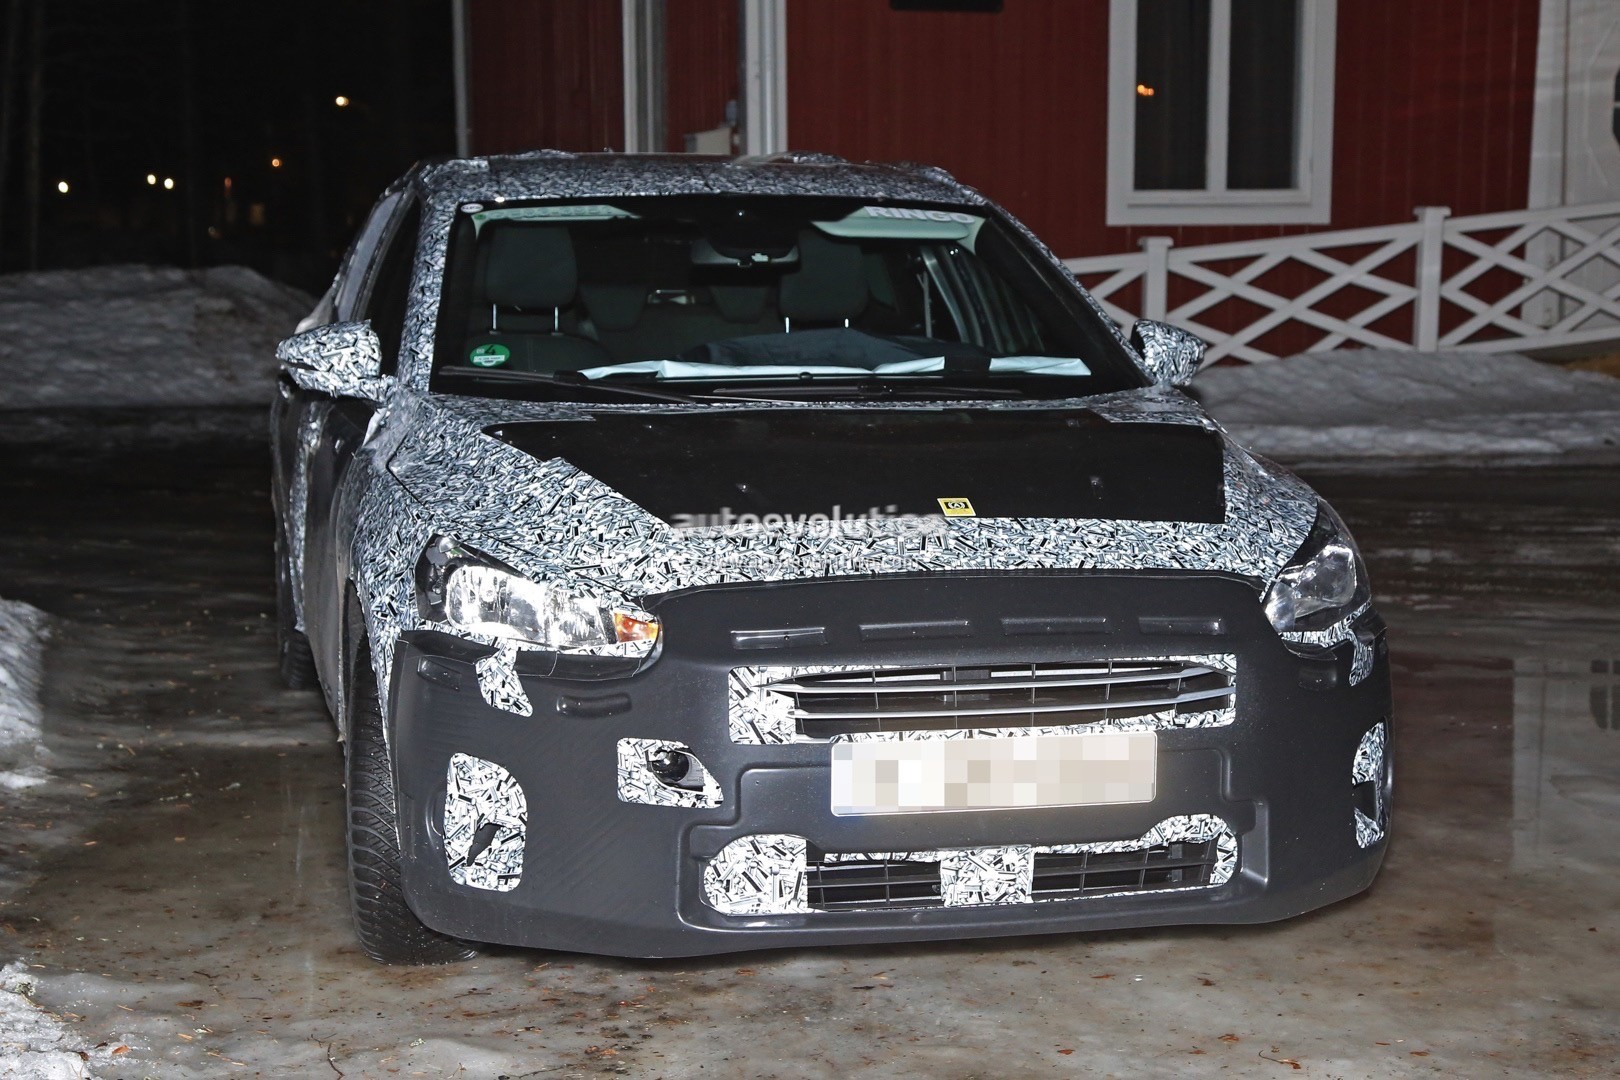 2019 Ford Focus ST Could Pack 275 HP 15liter Turbo with Amazing